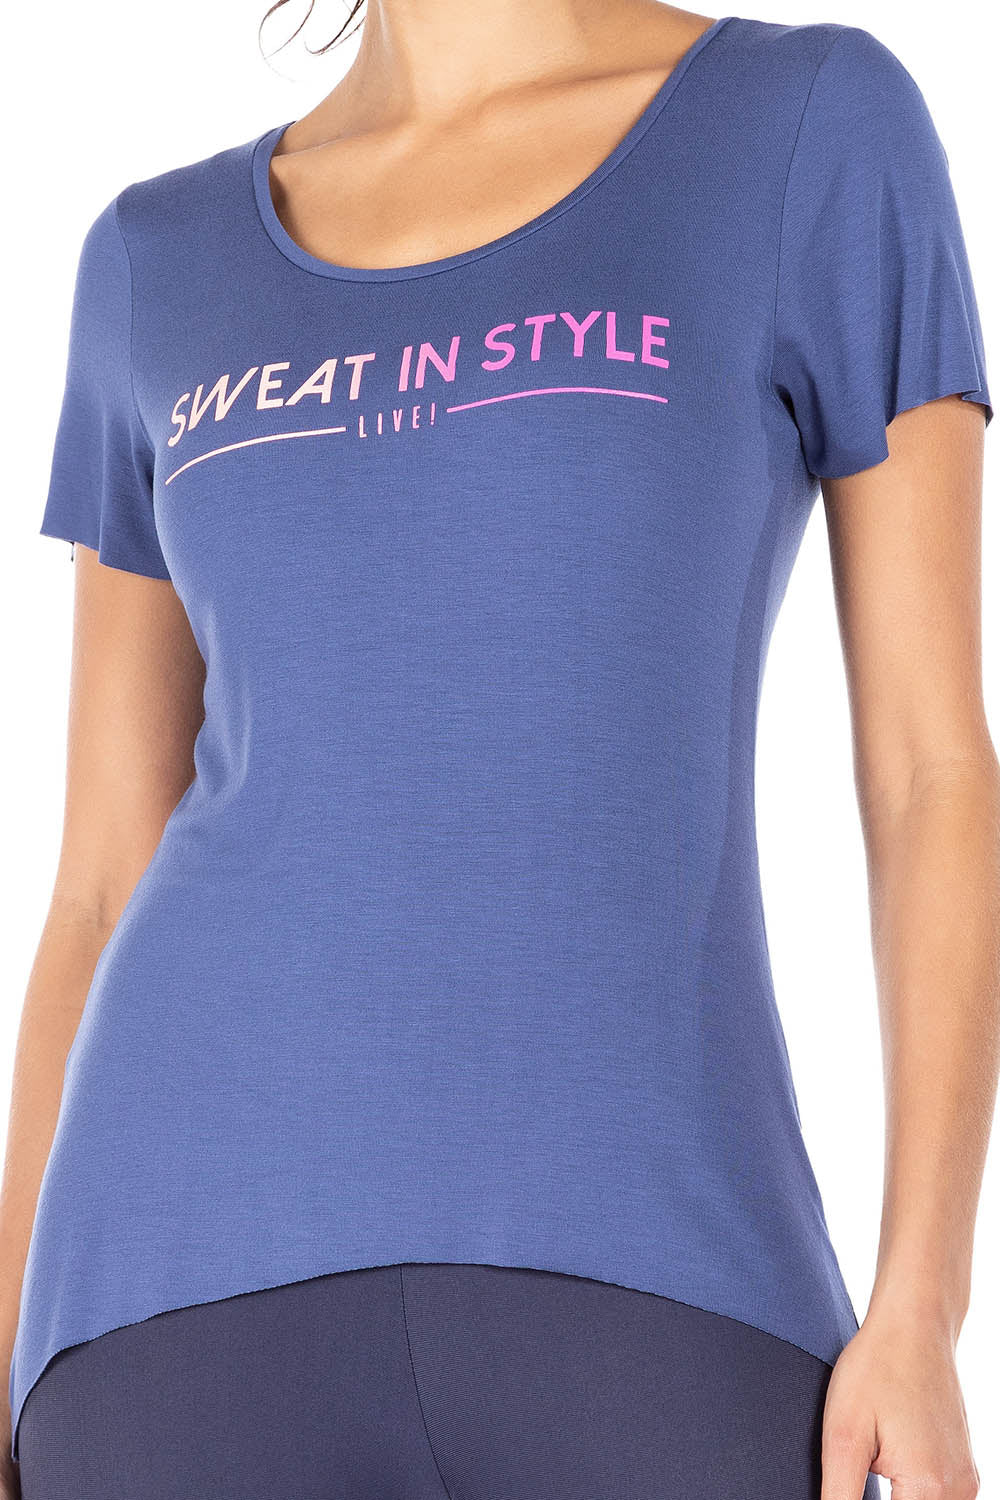 Sweat In Style Tee